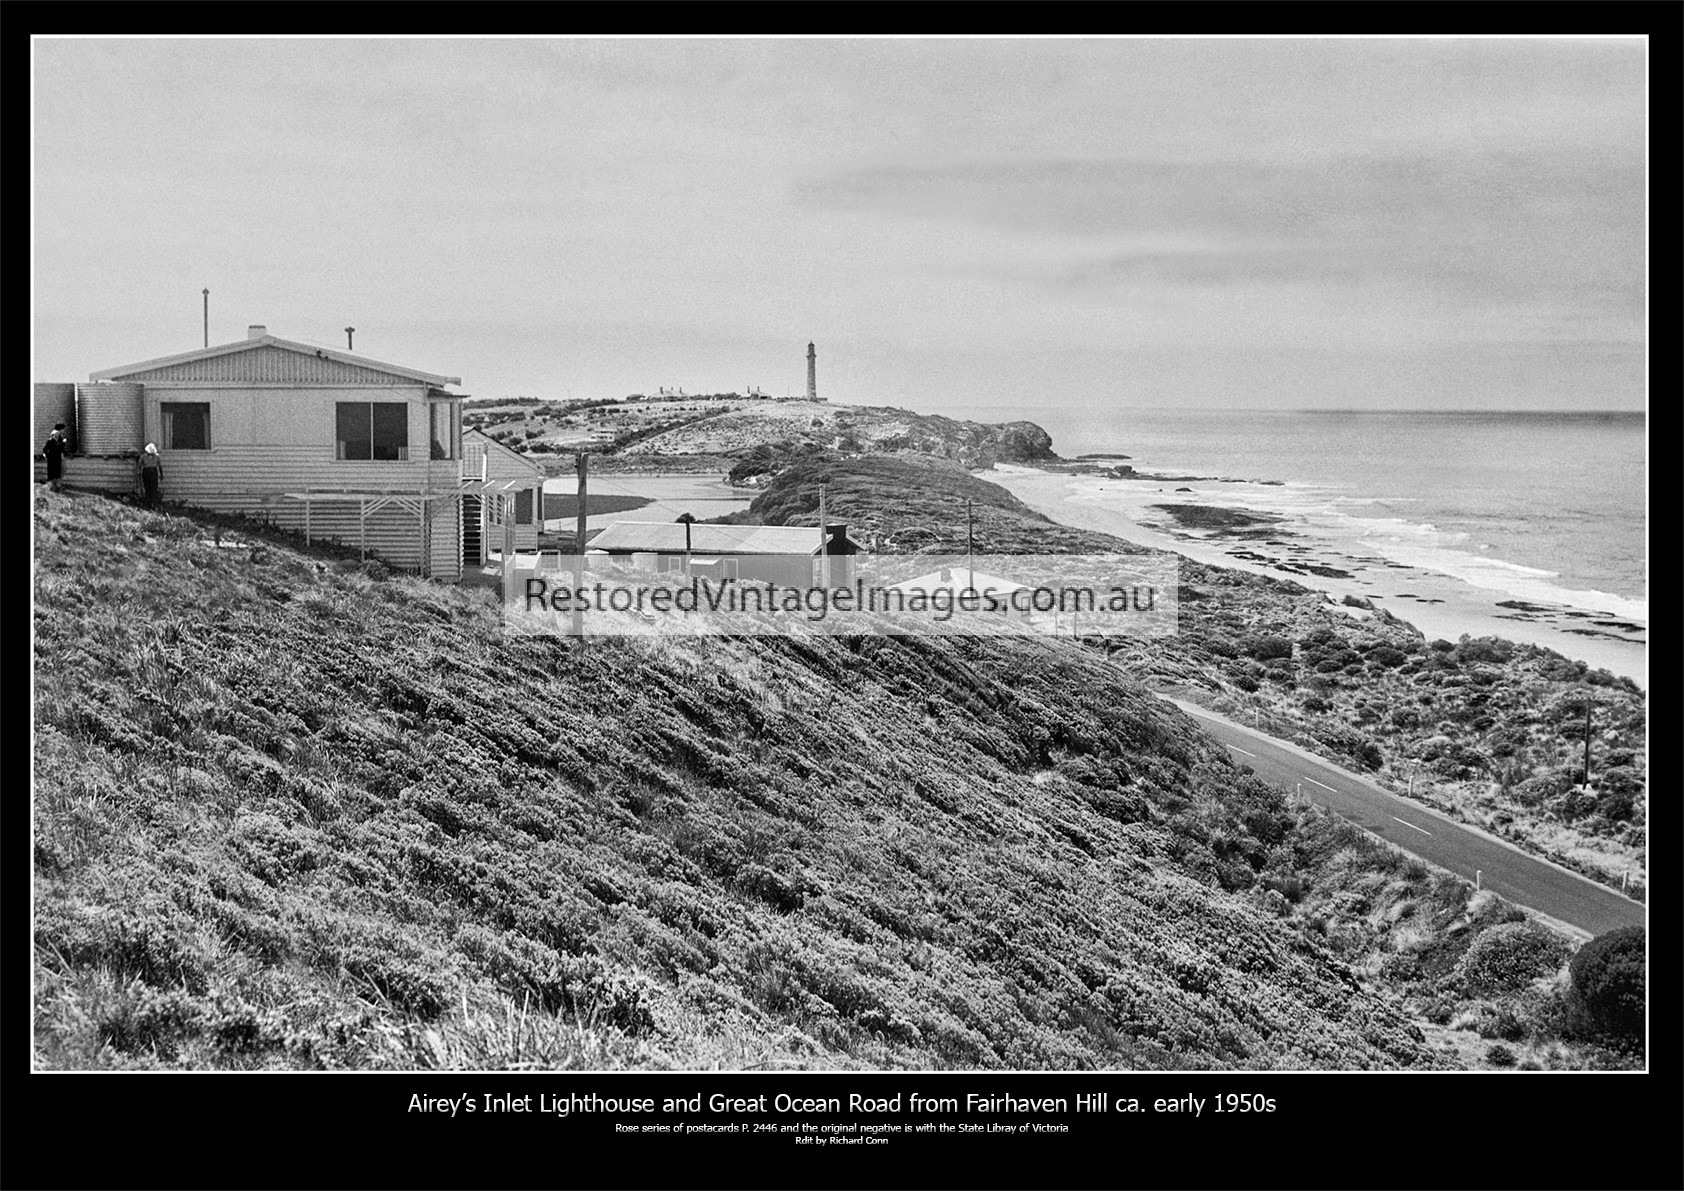 Aireys Inlet Lighthouse And Great Ocean Road From Fairhaven Hill Early 1950s